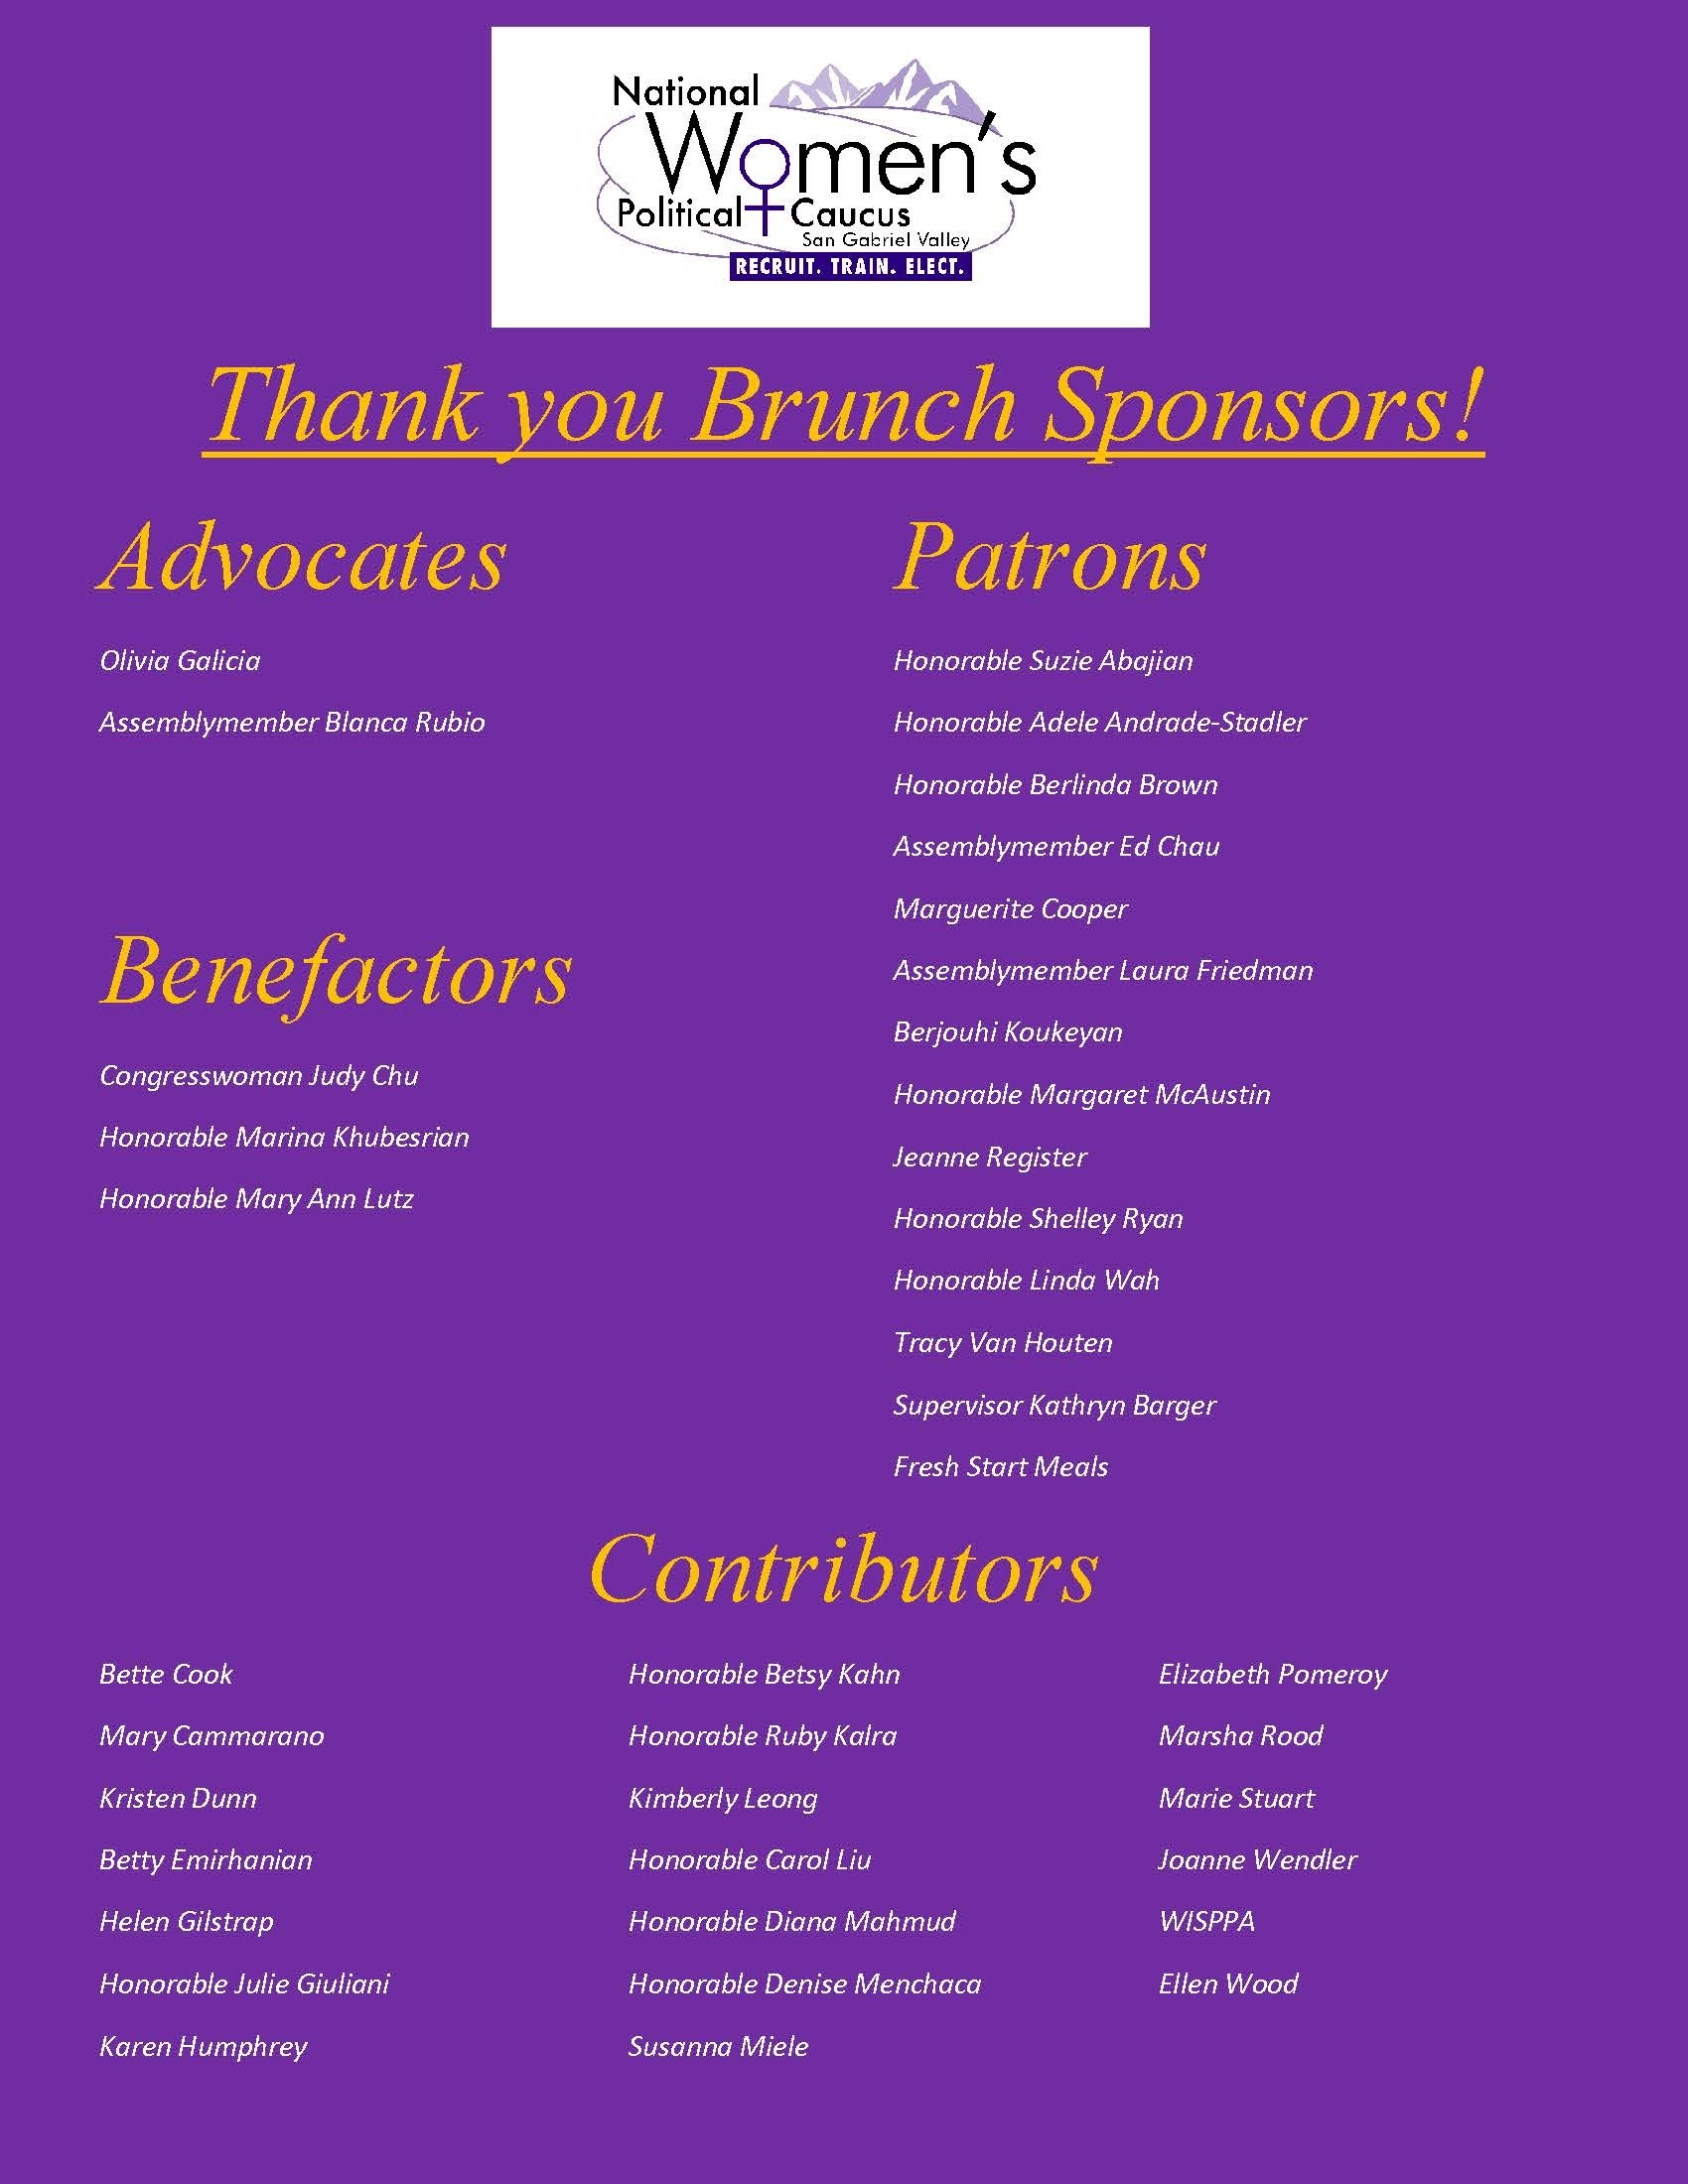 - Thank you to our Generous Sponsors!